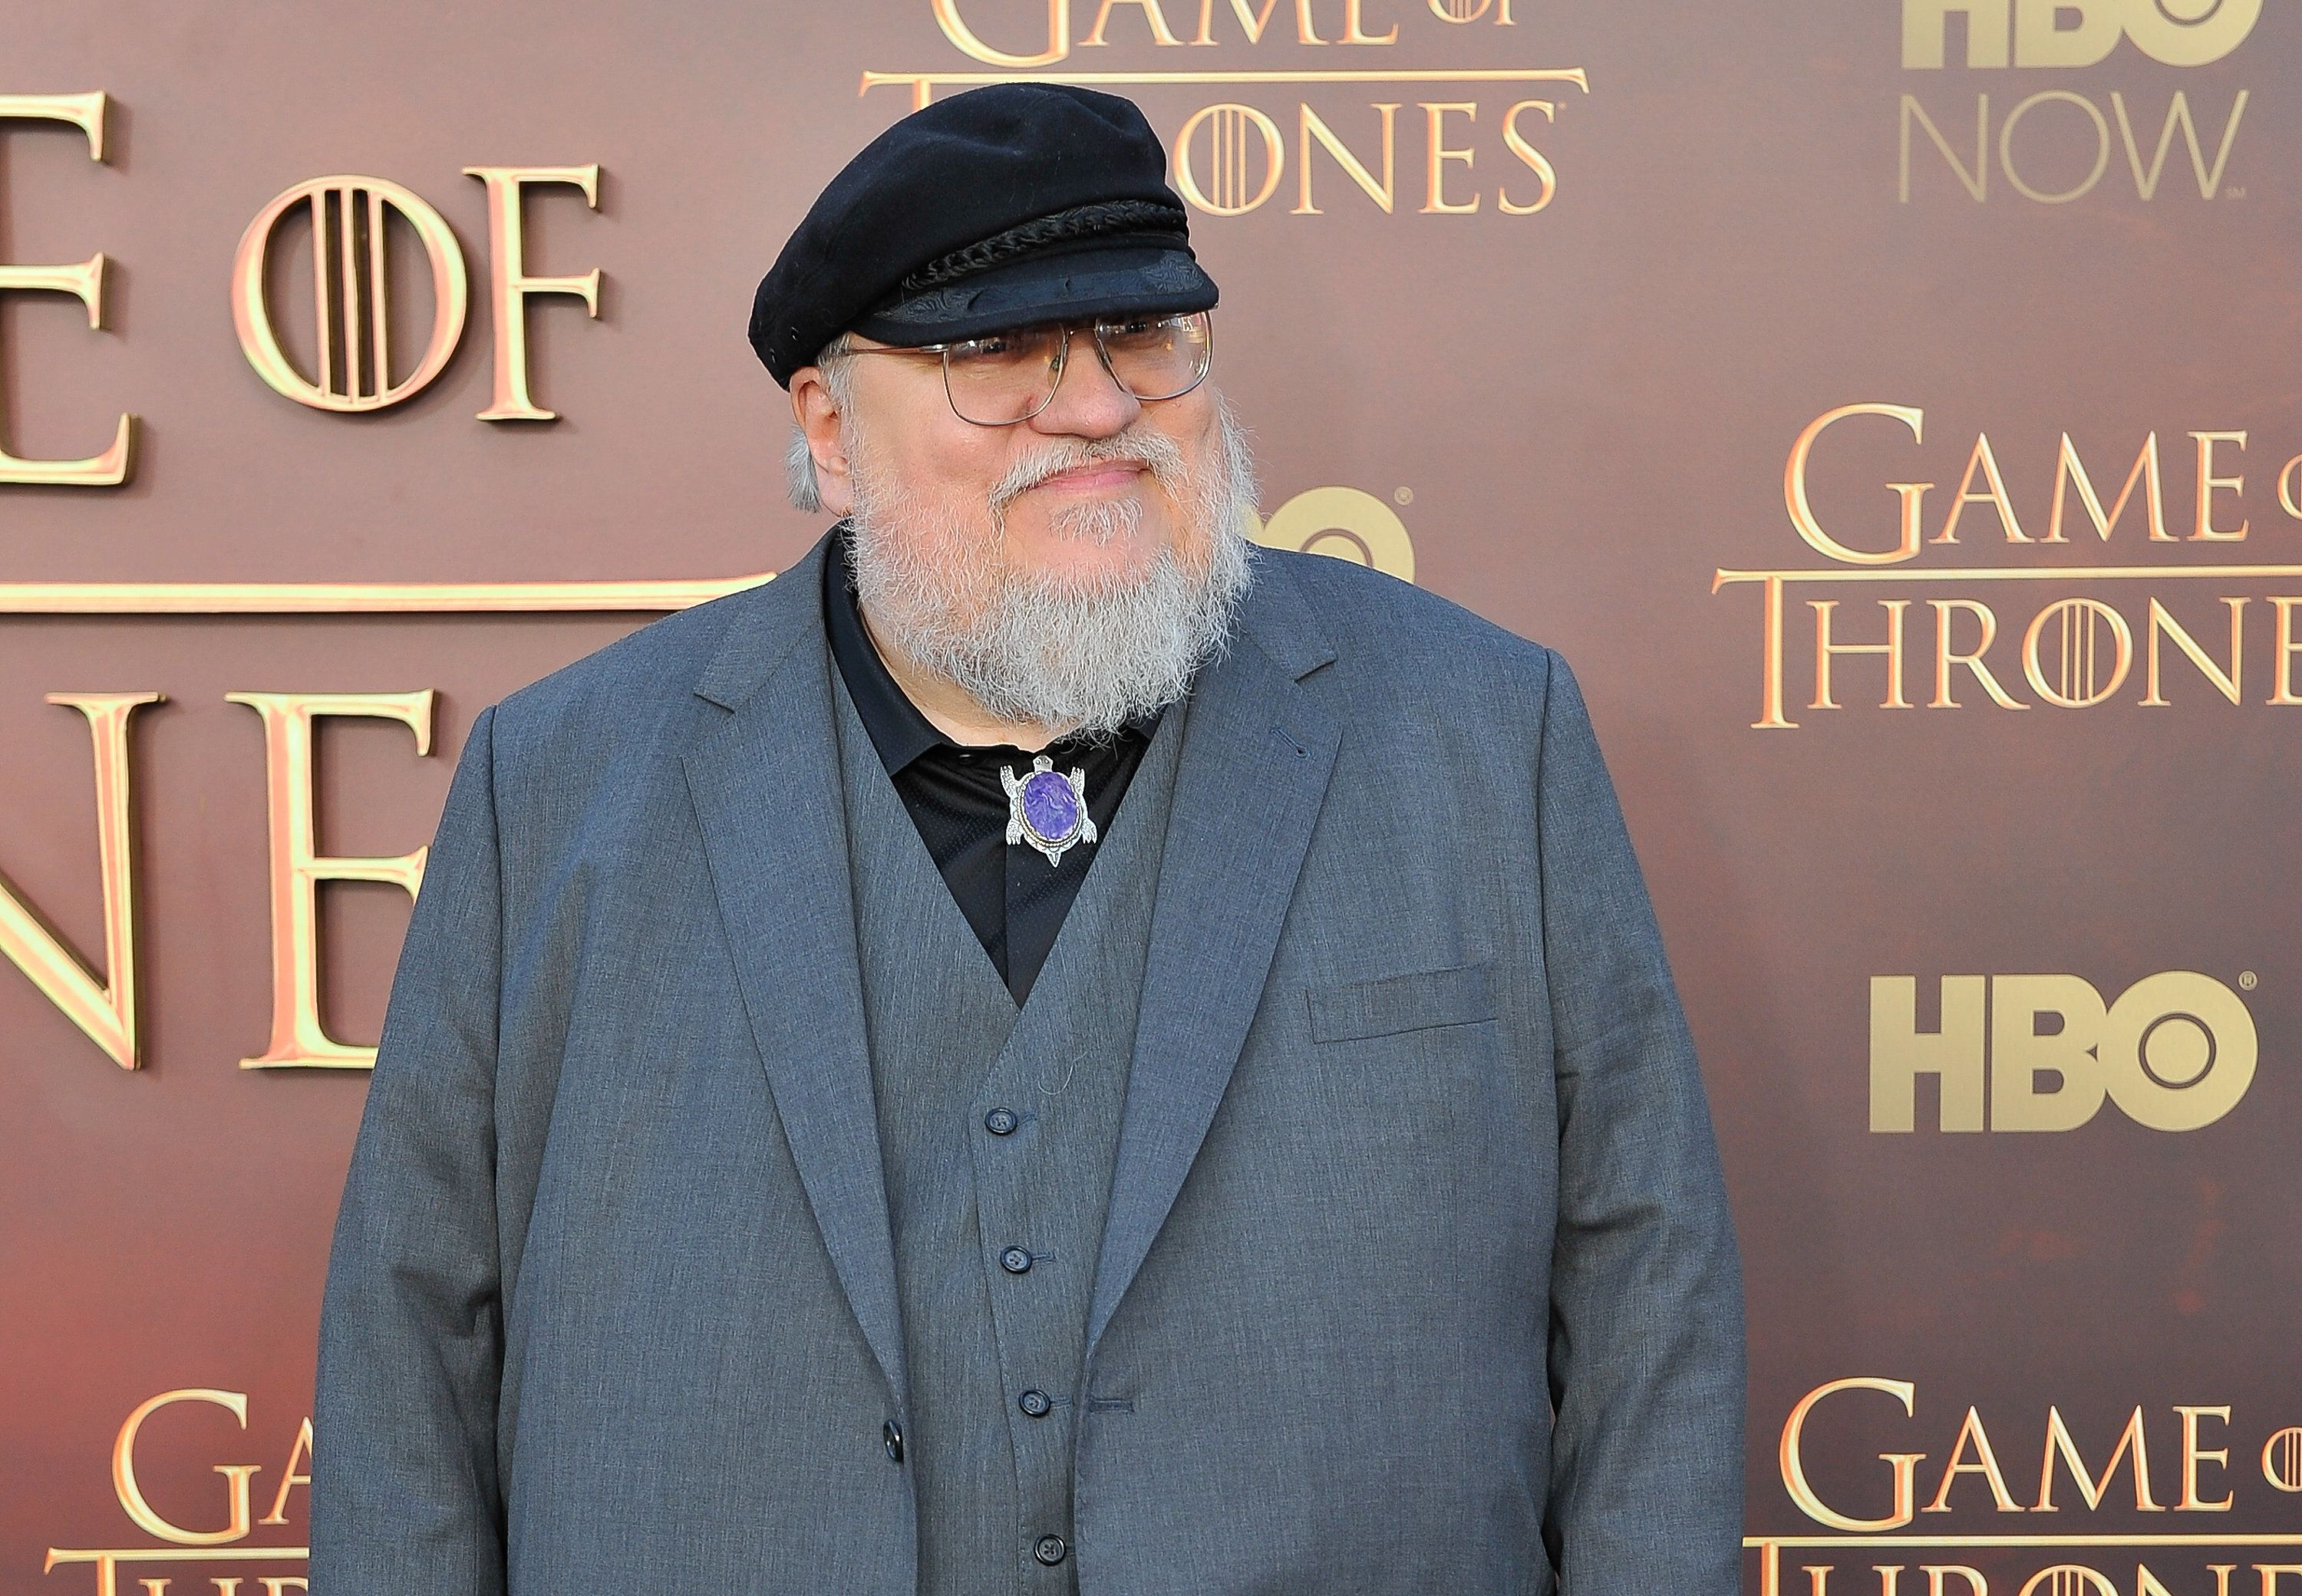 SAN FRANCISCO, CA - MARCH 23: George R.R. Martin Writer/Co-Executive Producer attends HBO's 'Game Of Thrones' Season 5 San Francisco Premiere at San Francisco Opera House on March 23, 2015 in San Francisco, California. (Photo by Steve Jennings/WireImage)